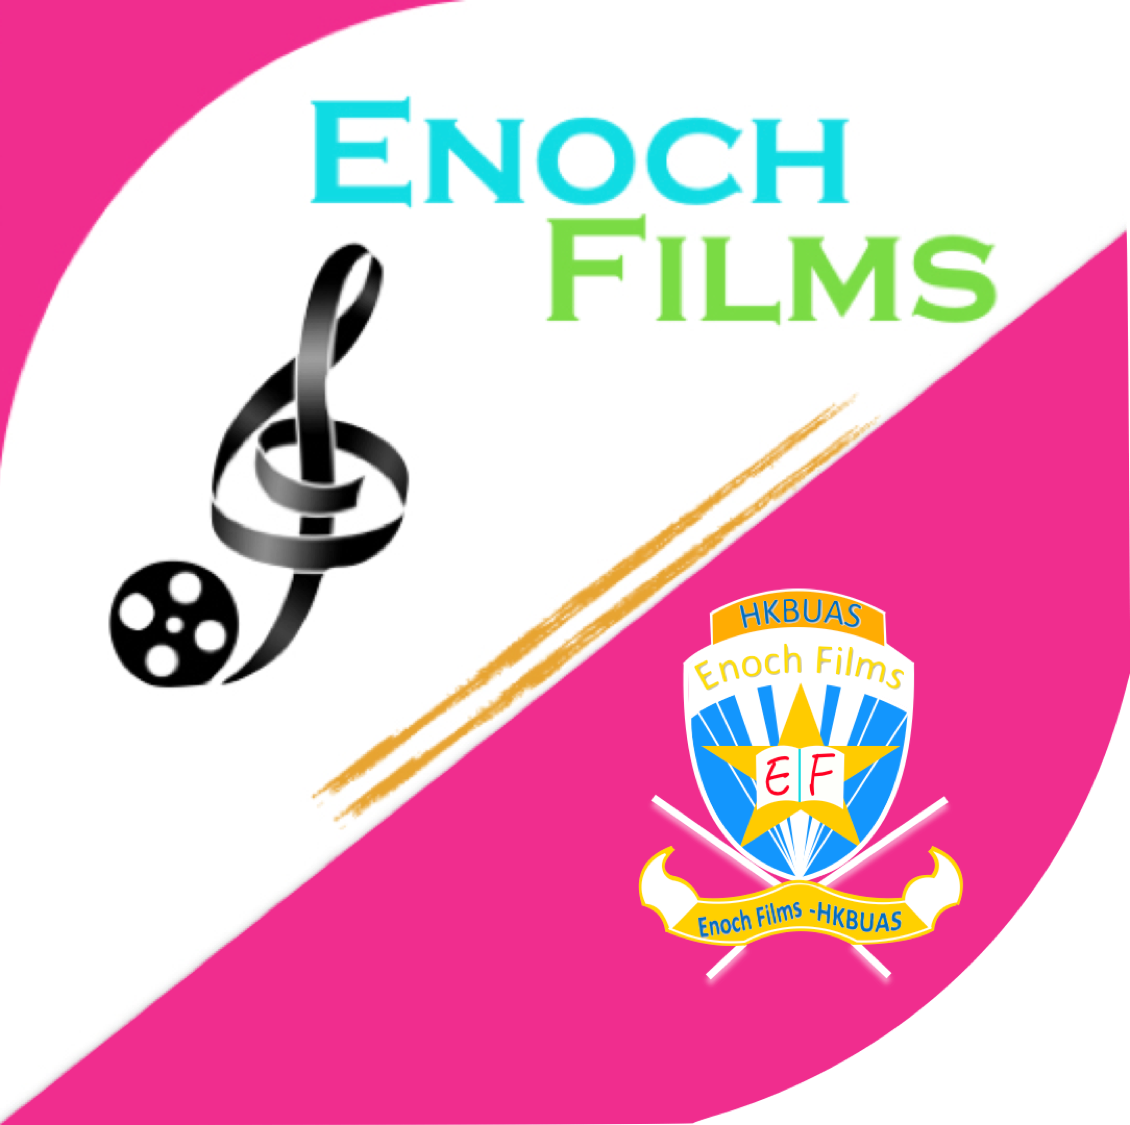 Enoch Films -HKBUAS messages sticker-8